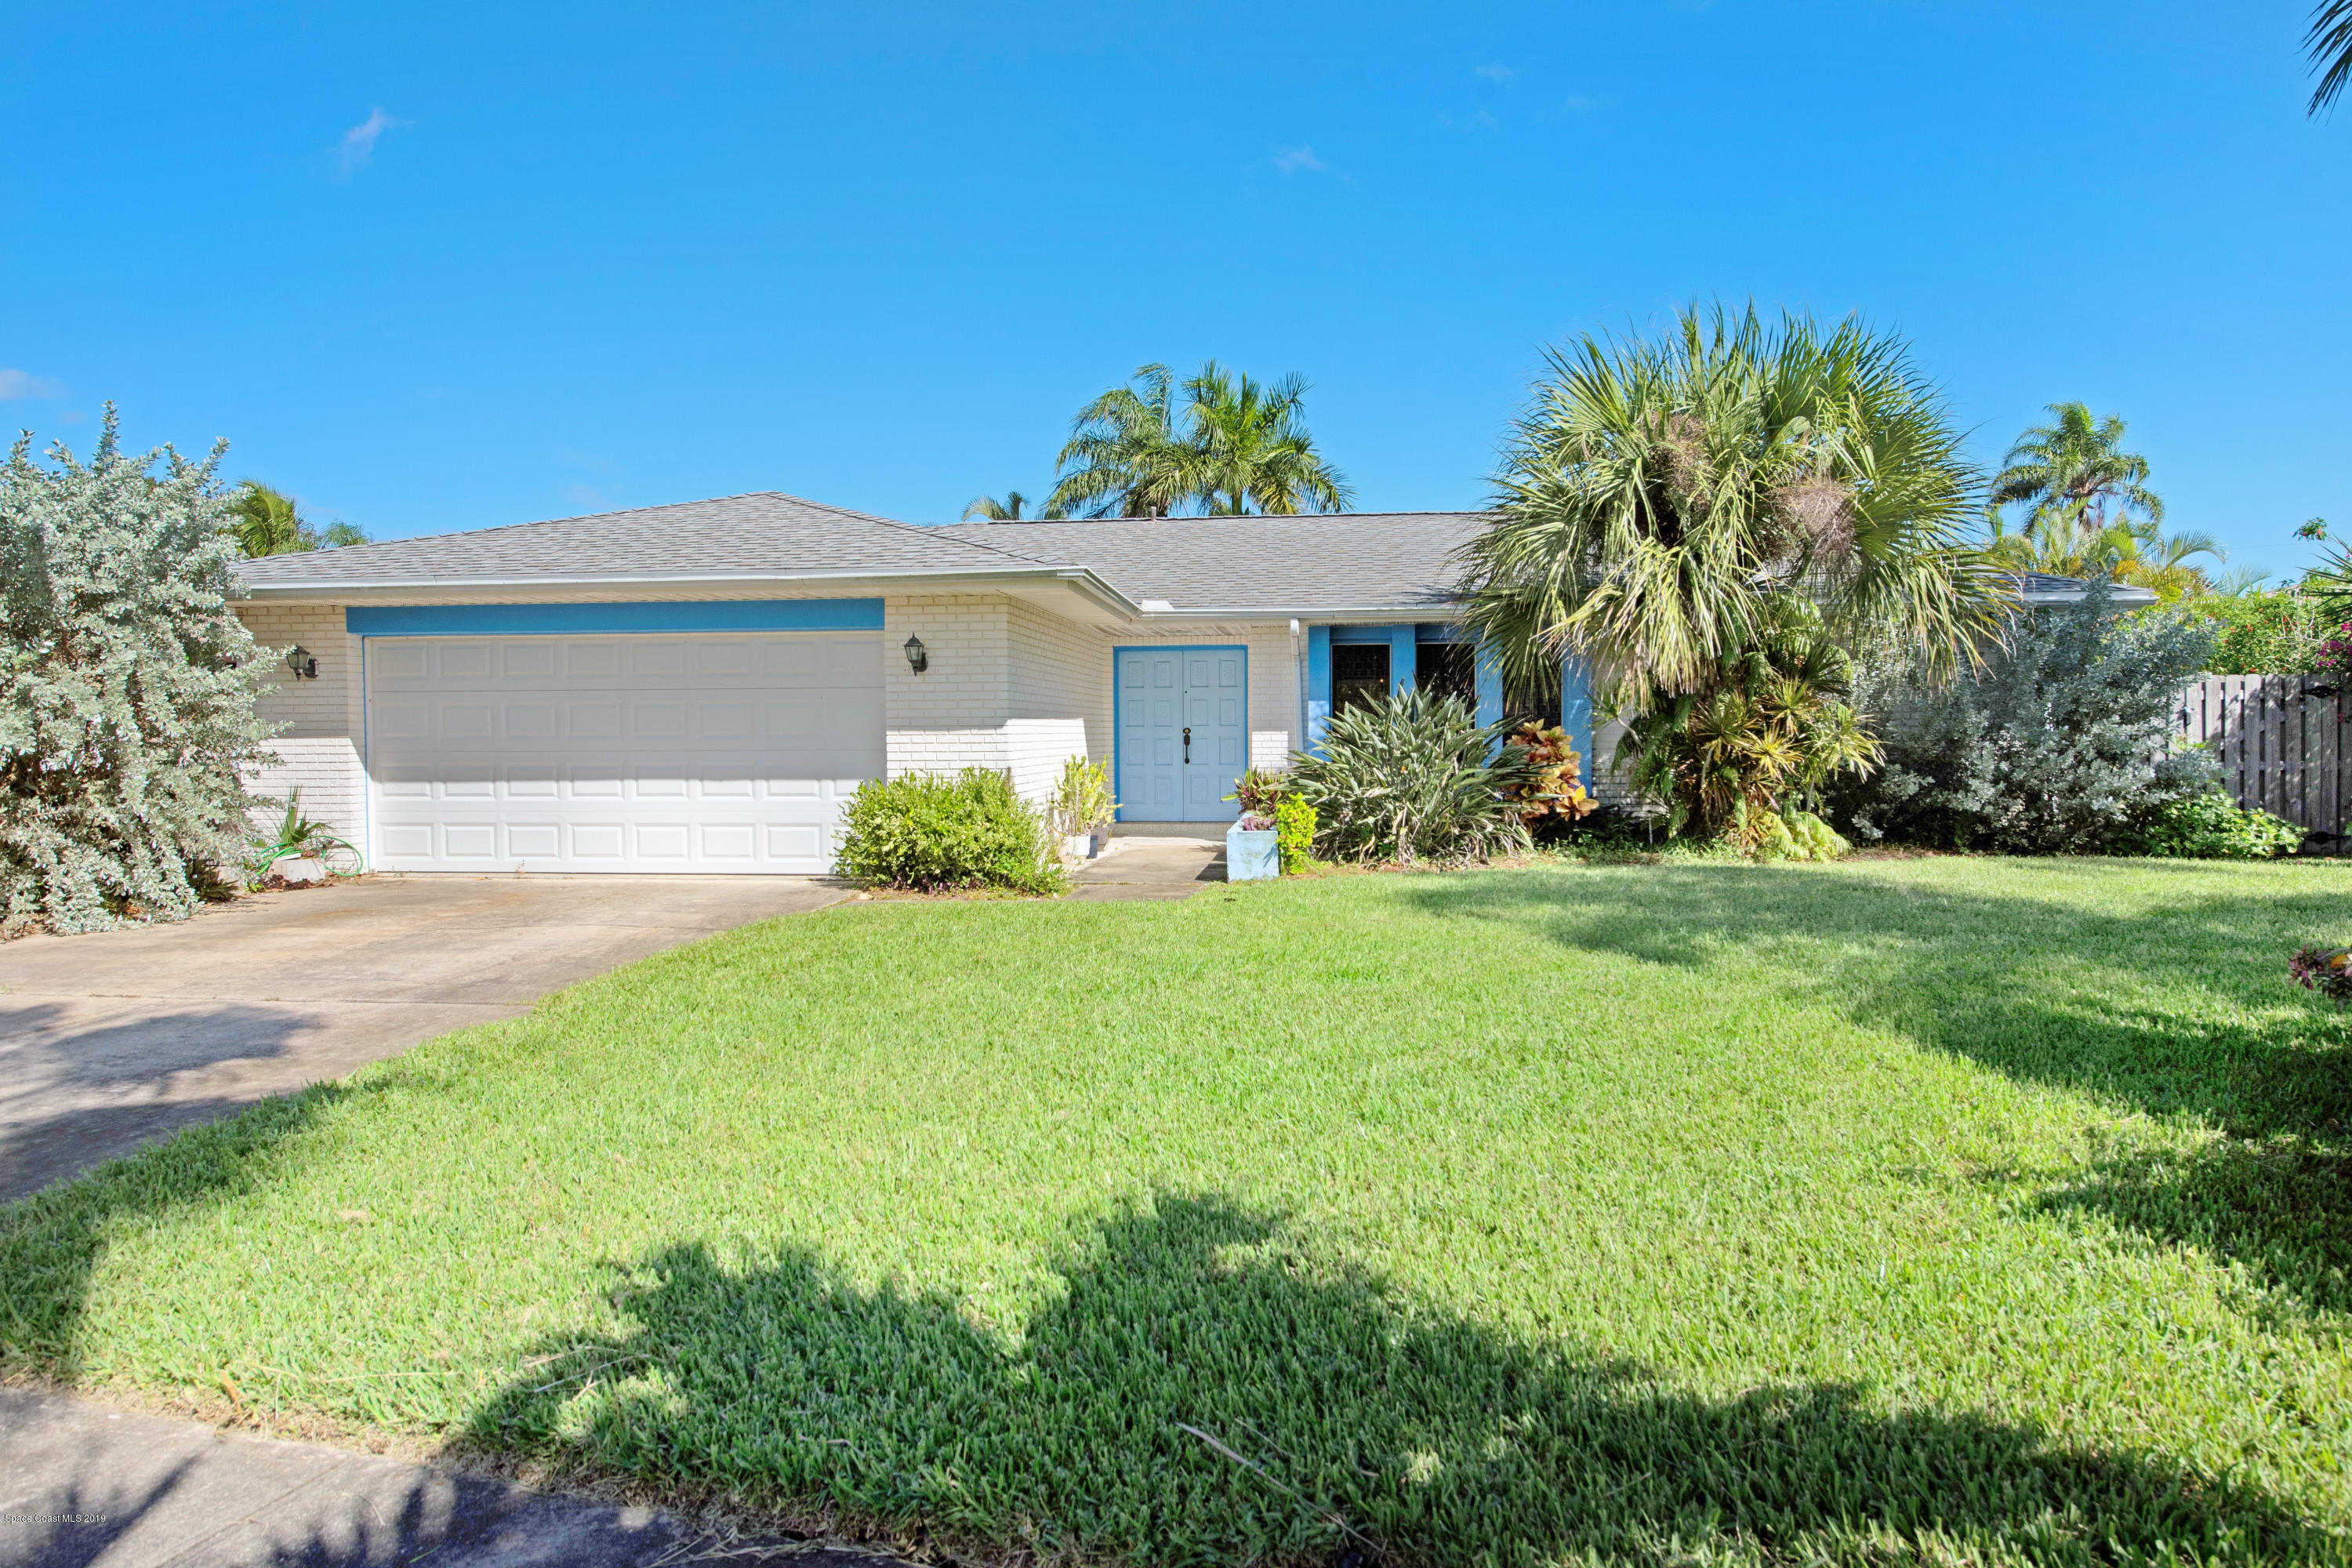 Single Family Homes for Sale at 470 Trinidad Satellite Beach, Florida 32937 United States